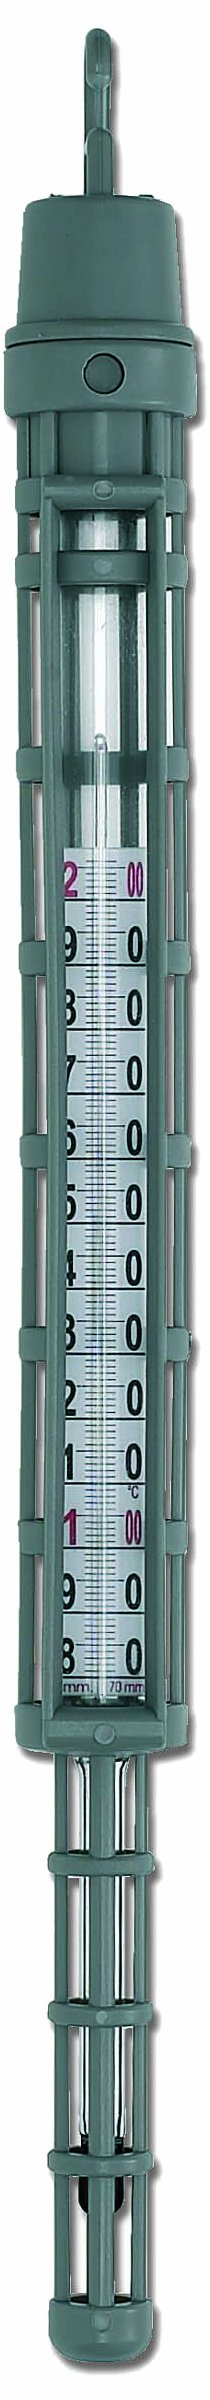 Matfer Bourgeat 250330 Candy Thermometer, 11-7/16-Inch